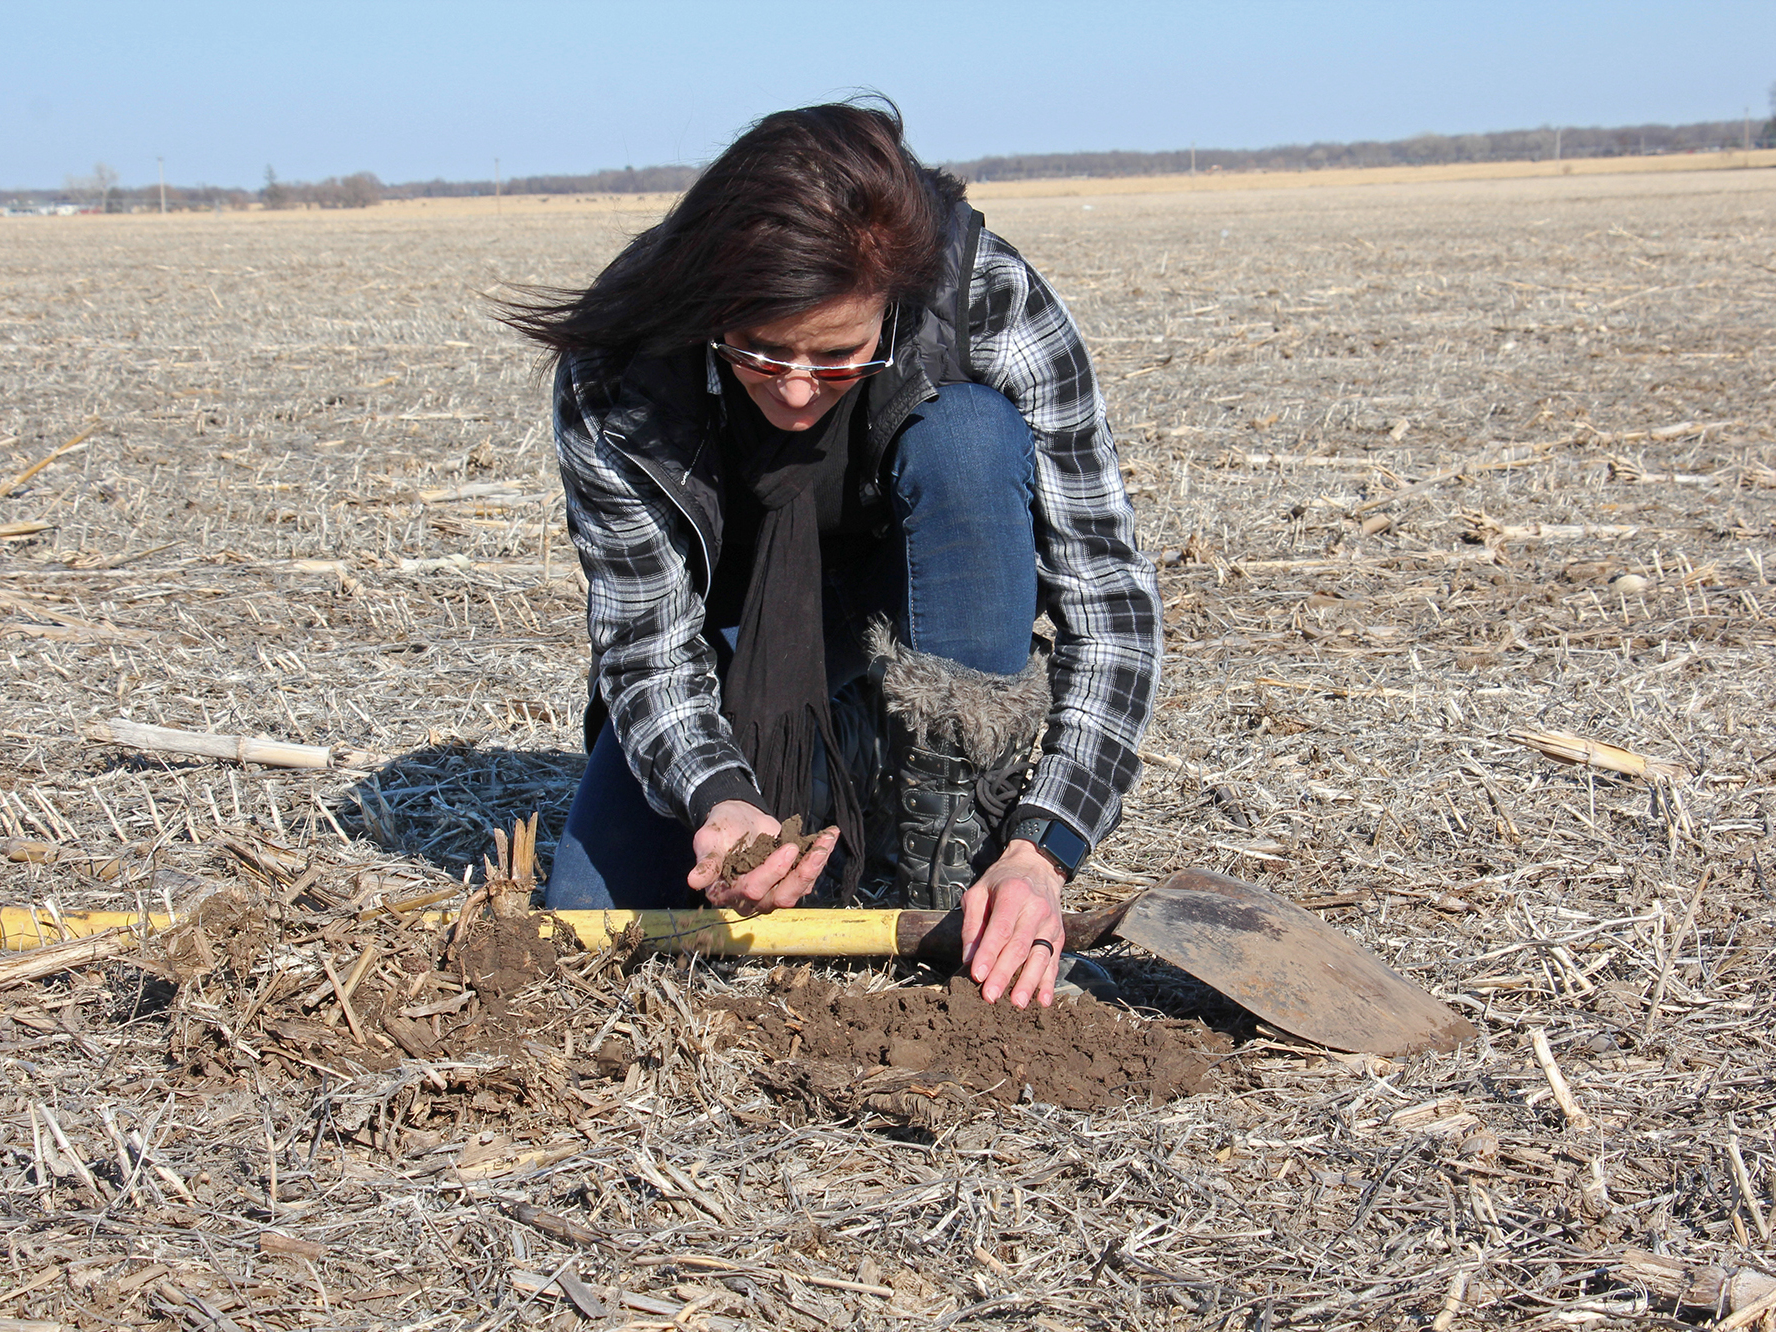 Deb Gangwish inspects soil on her farm near Shelton, Neb. (Photo: Dan Charles)